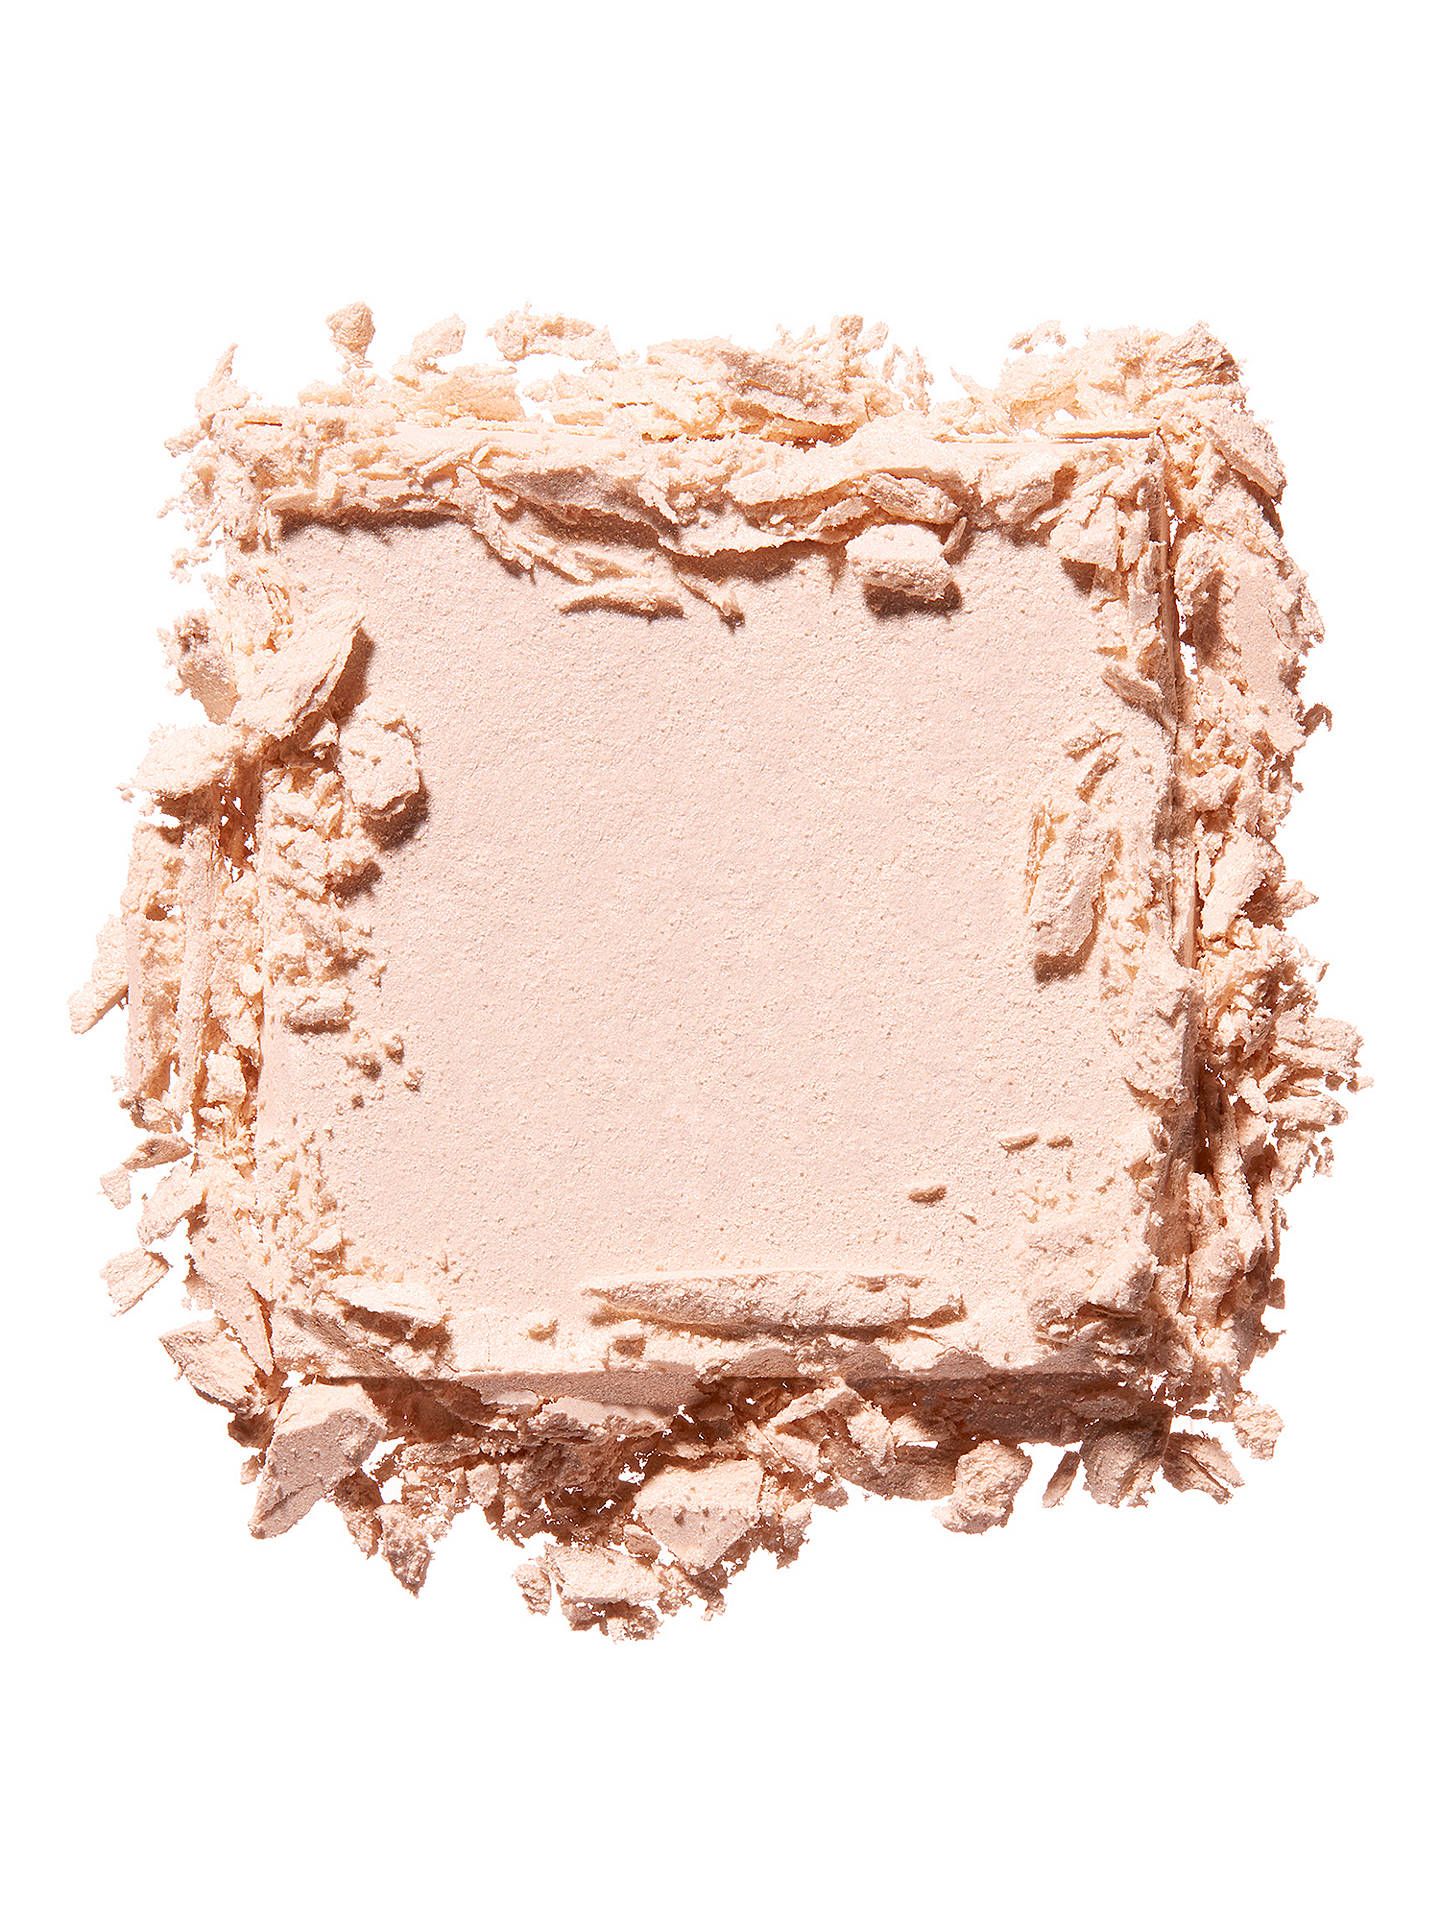 BuyShiseido Inner Glow Cheek Powder, Inner Light 01 Online at johnlewis.com